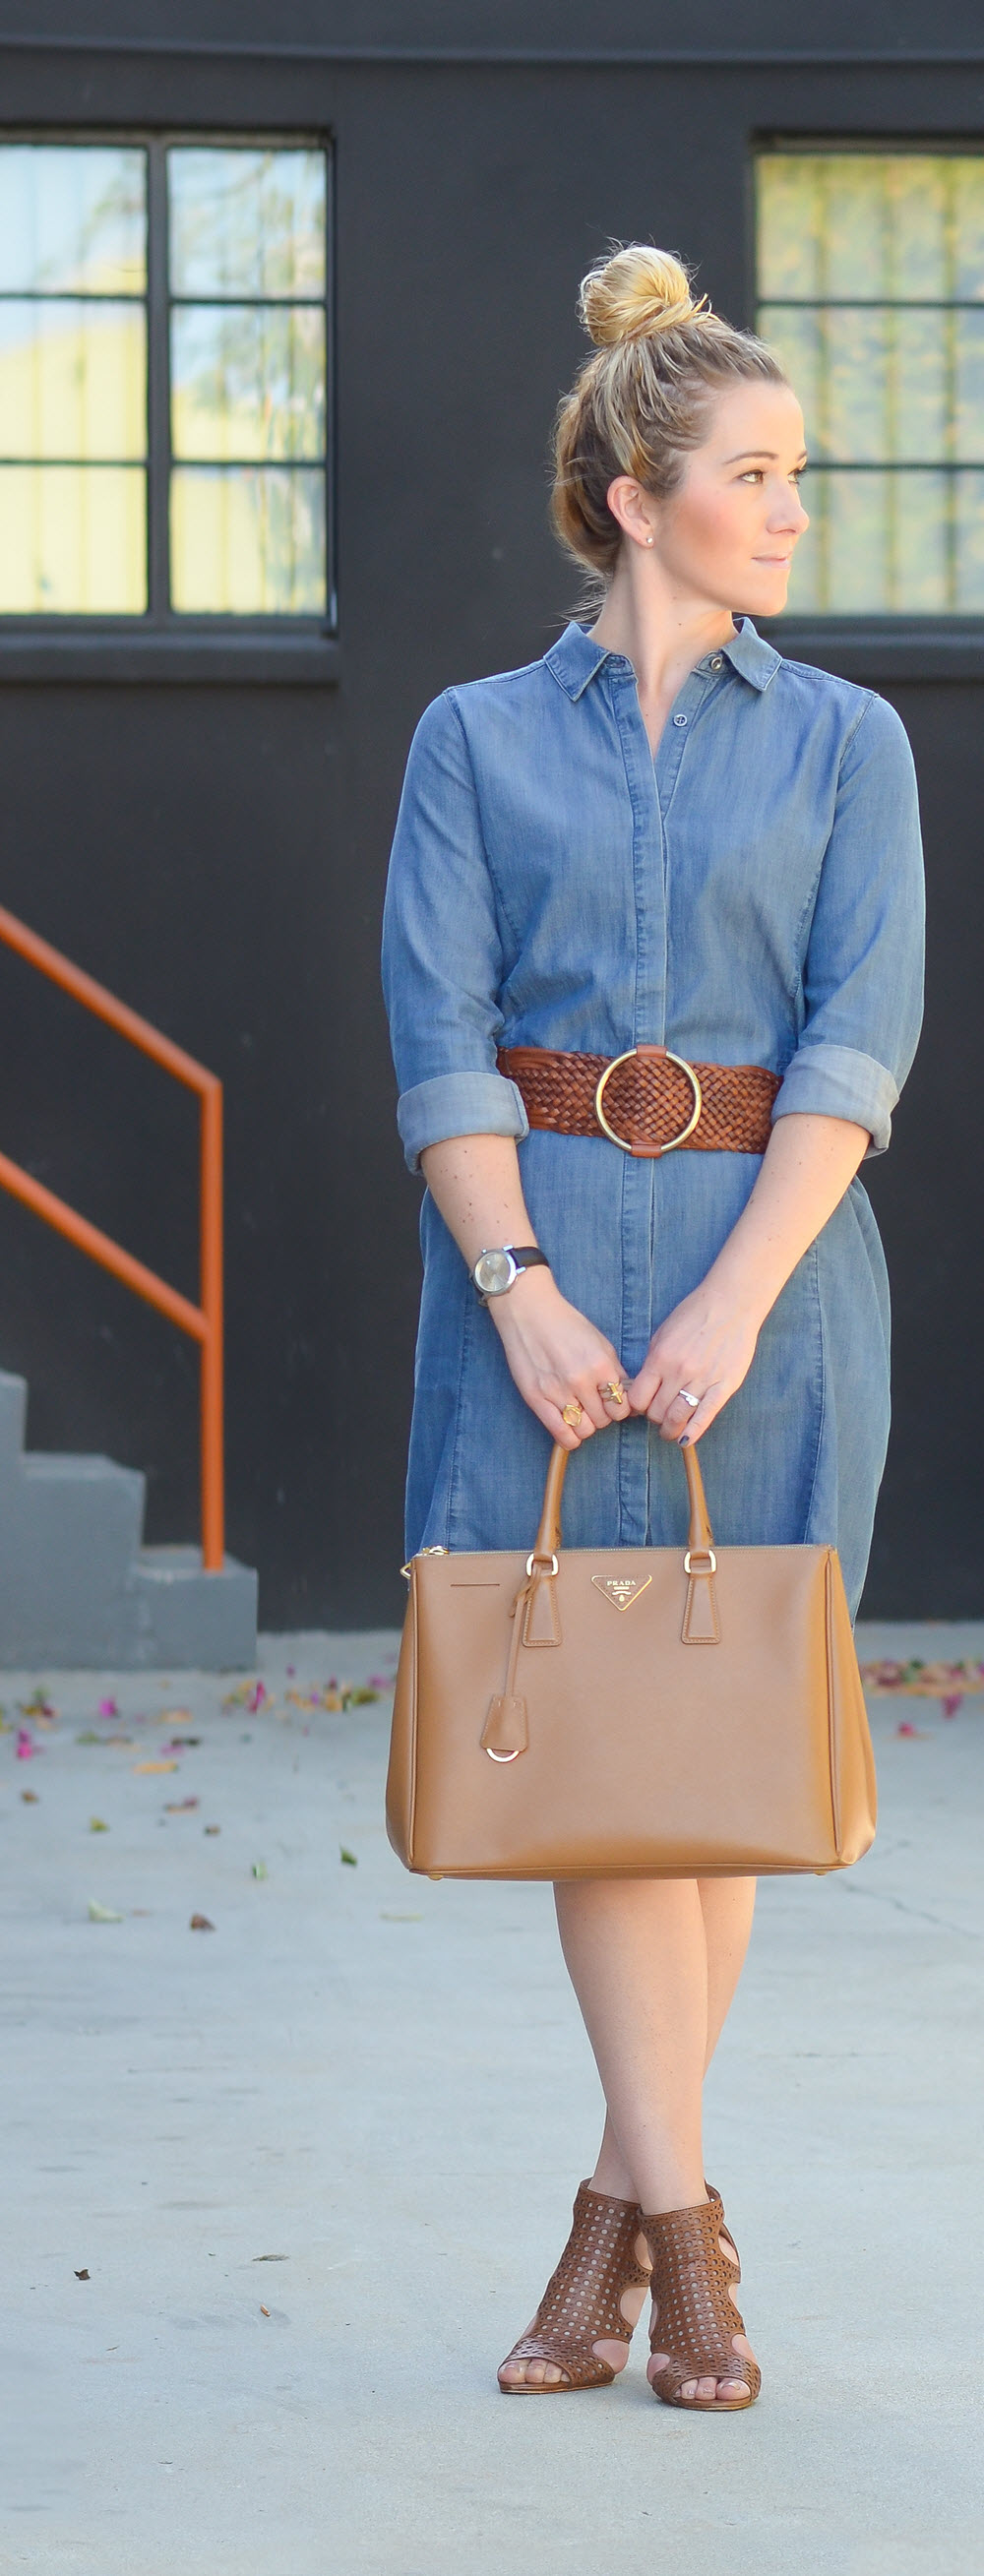 How to Style Denim Shirt Dress w. Belt | Luci's Morsels